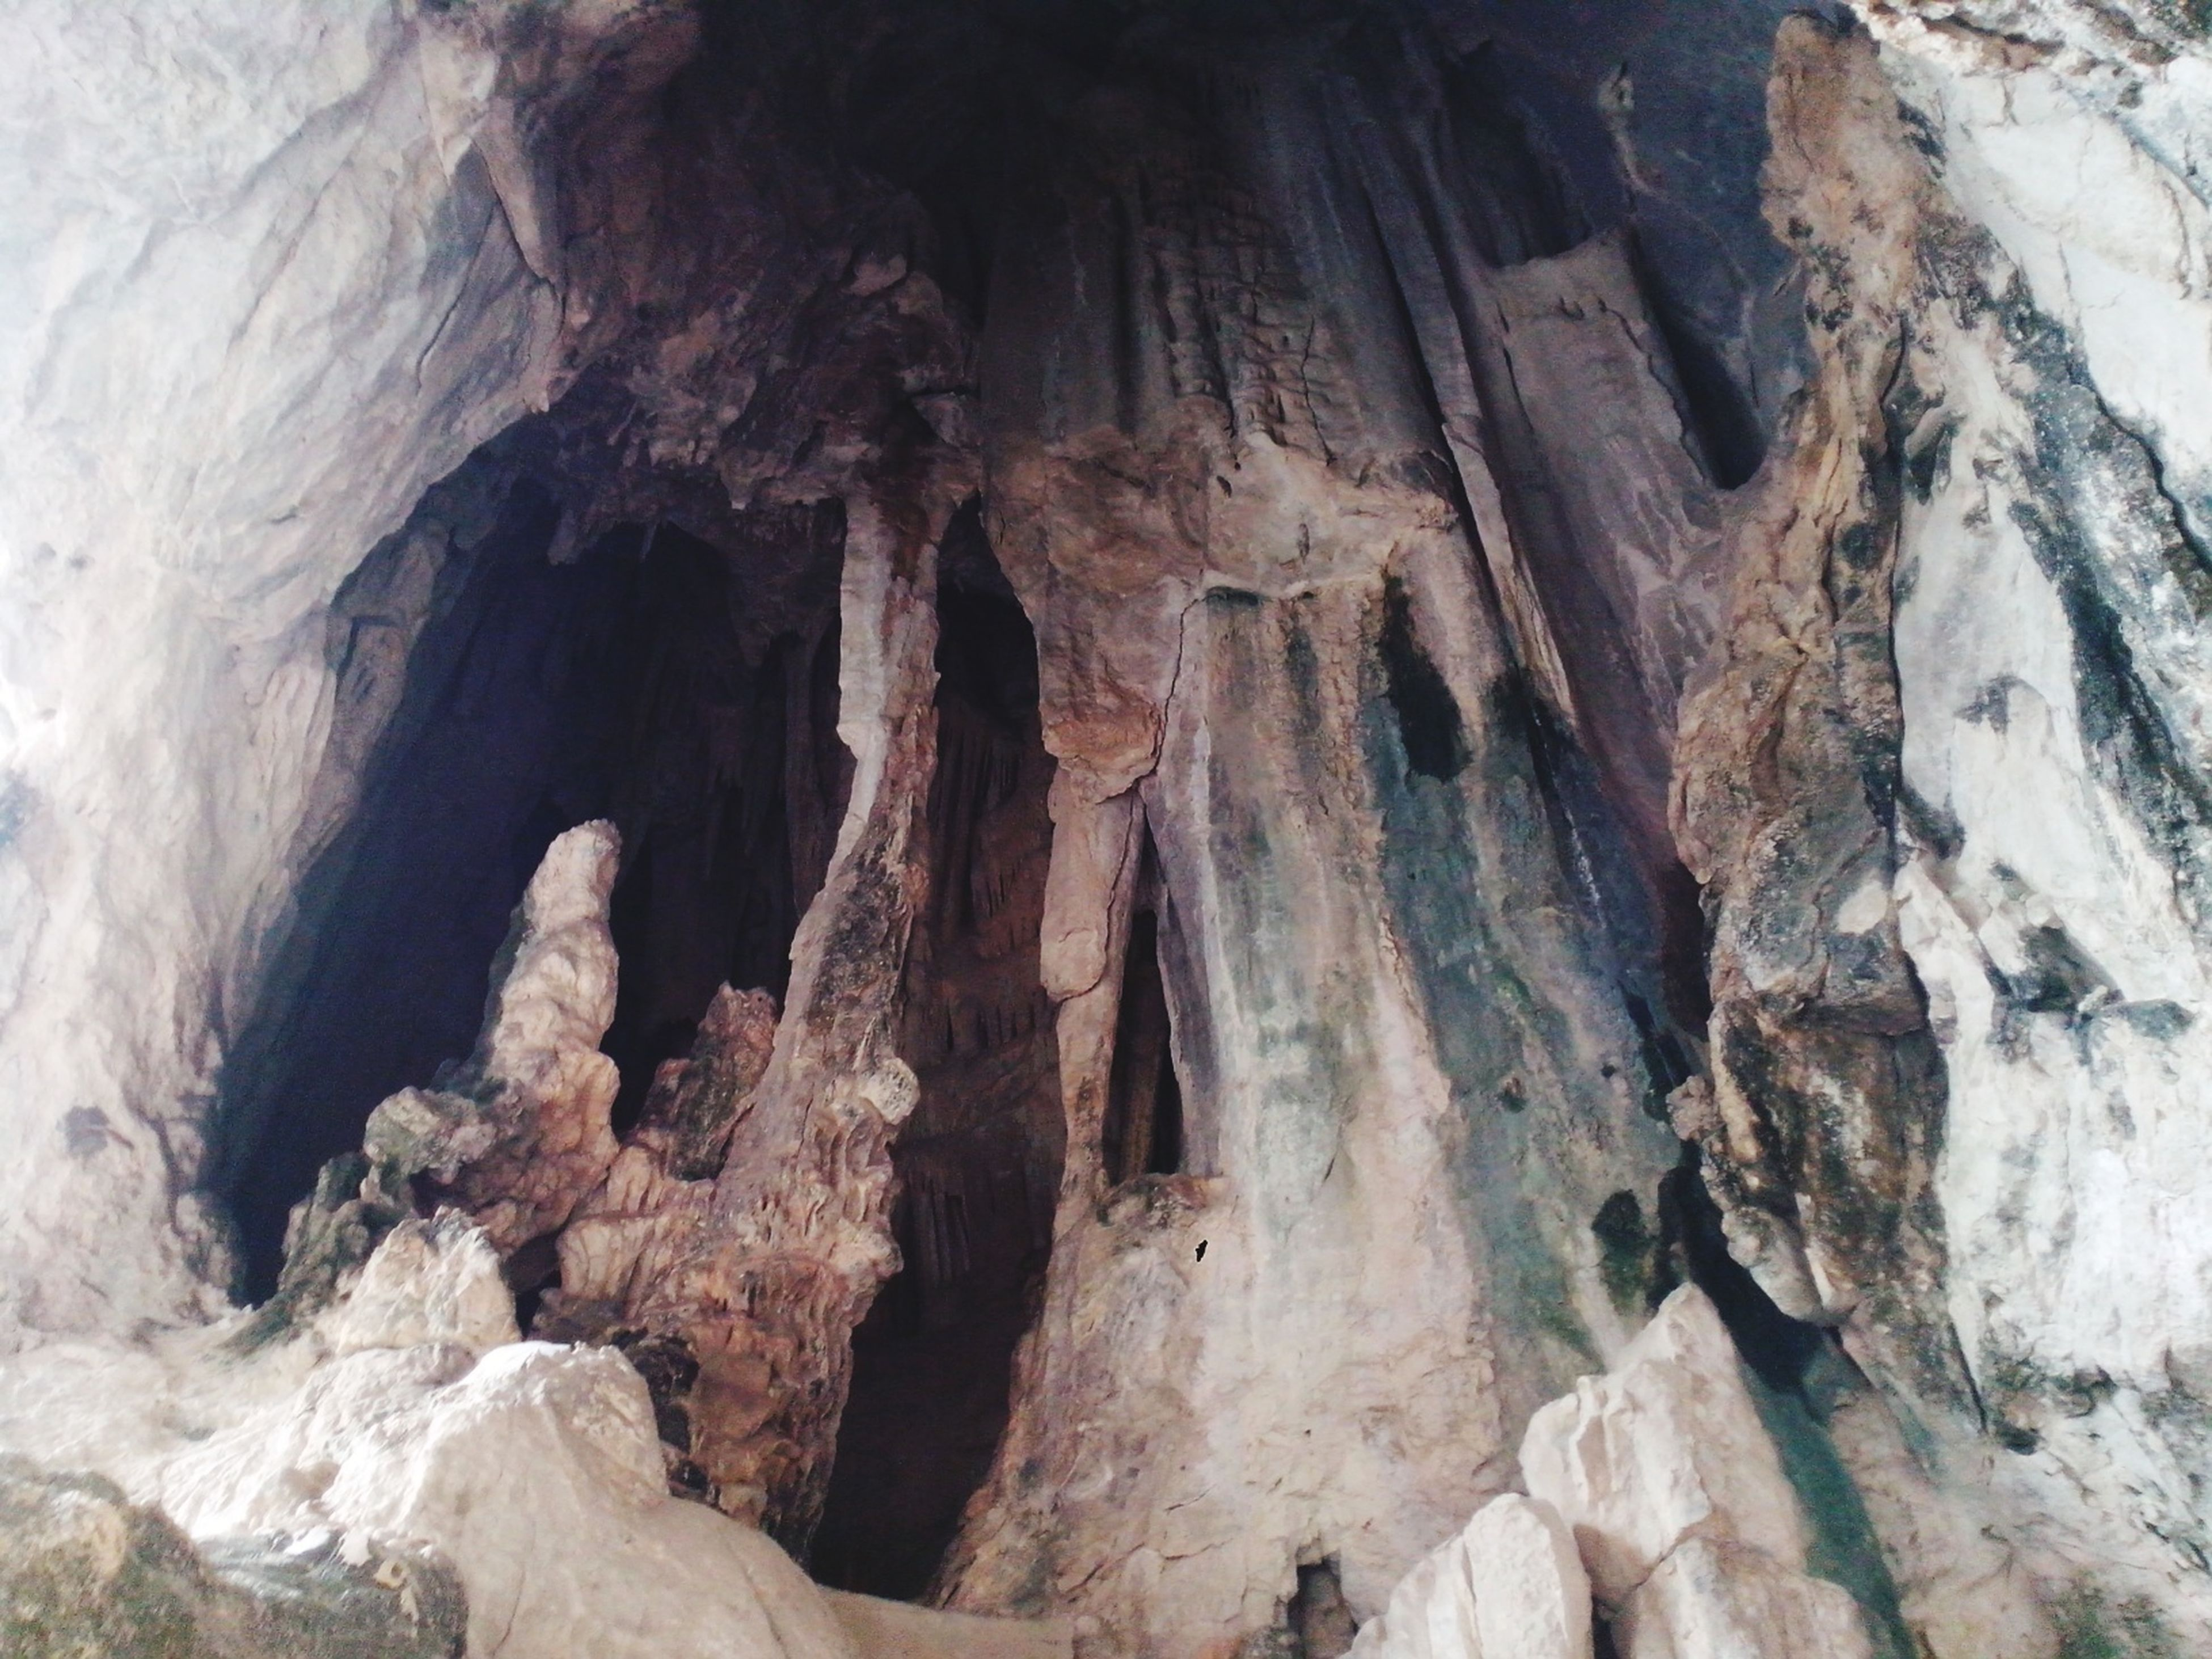 rock formation, rock - object, geology, rough, textured, eroded, rock, physical geography, nature, rocky, cave, rugged, natural pattern, tranquility, rocky mountains, beauty in nature, low angle view, no people, day, outdoors